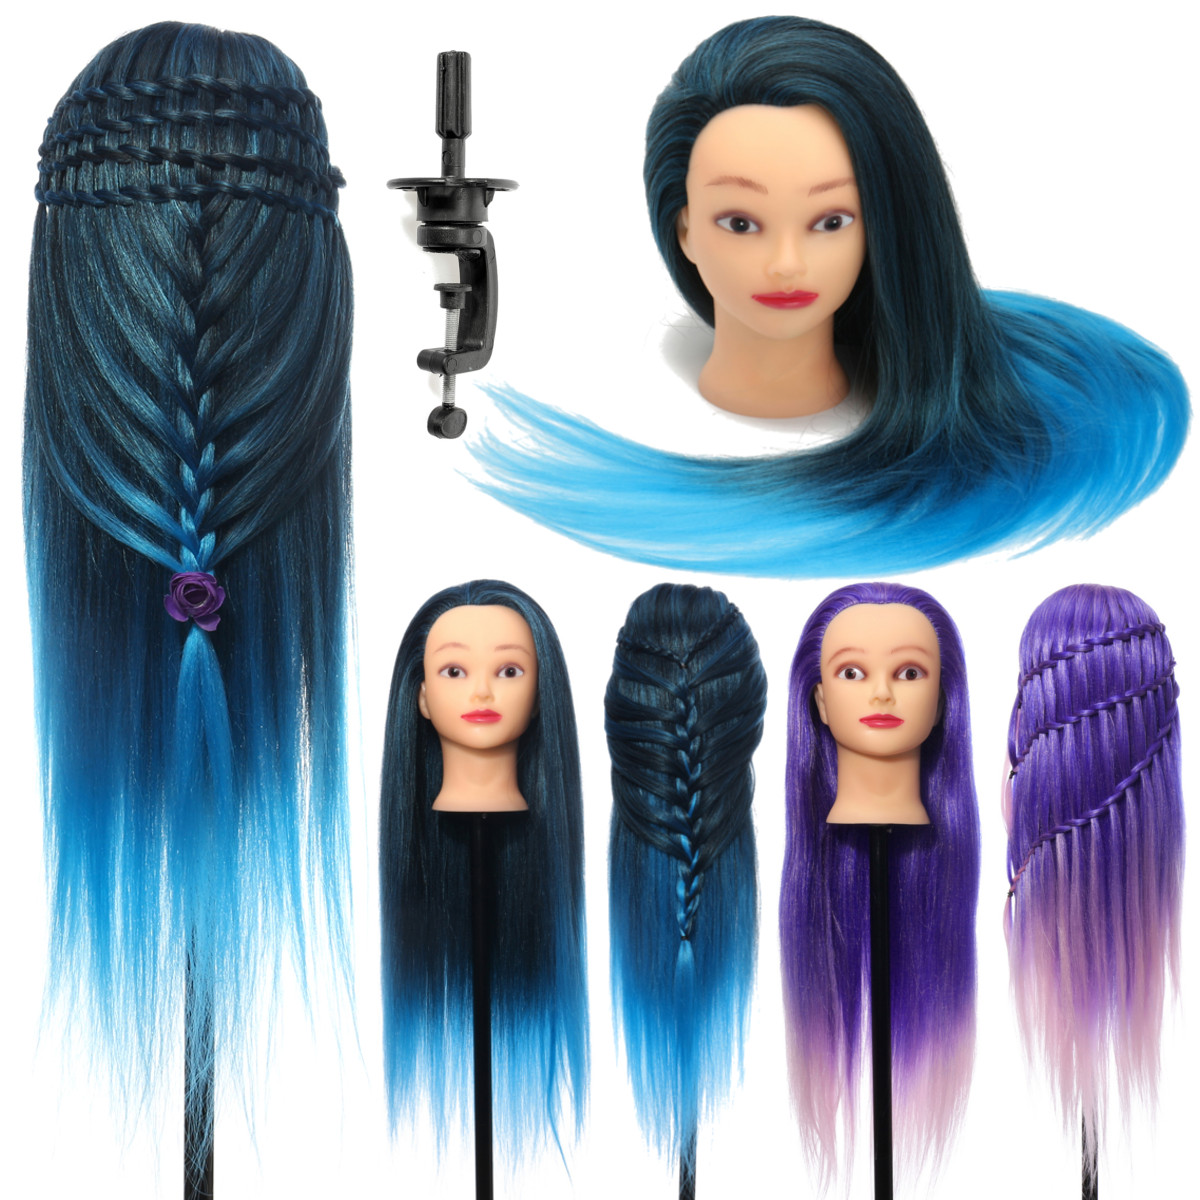 """26"""" Hairdressing Training Head Model Colorful High Temperature Fiber Long Hair With Clamp Salon Practice Doll Mannequin Head"""